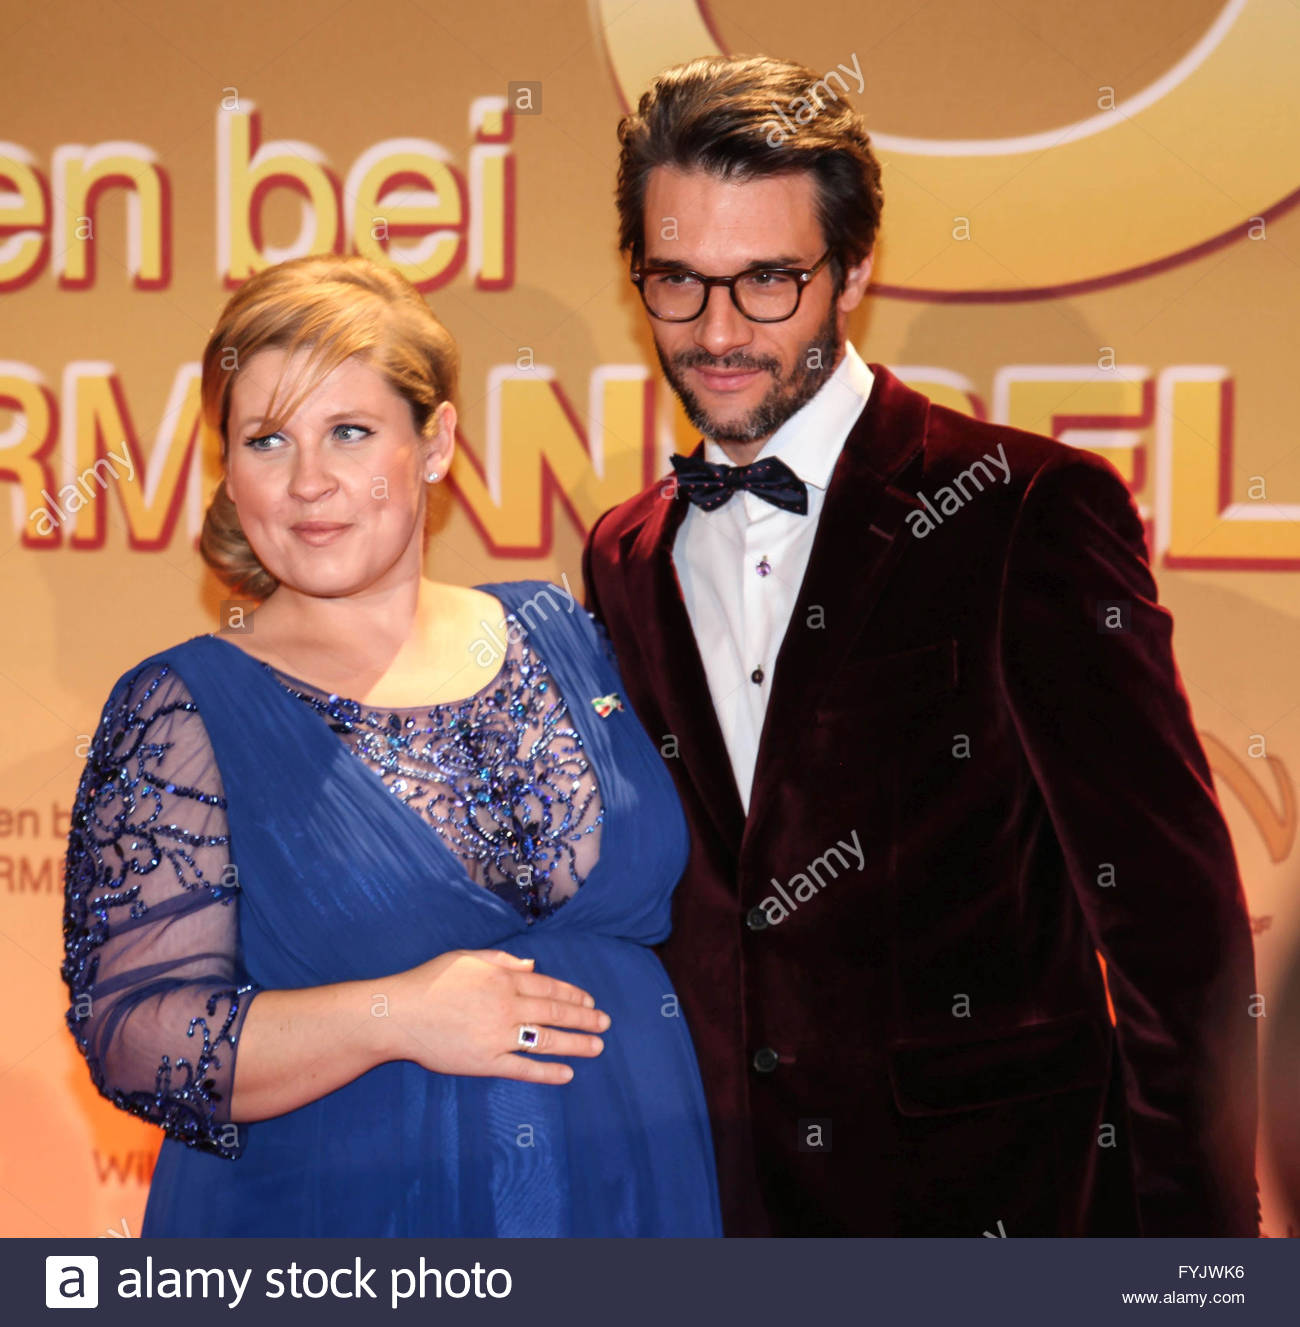 Maite Kelly and Florent Raimond Stock Photo: 103062826 - Alamy